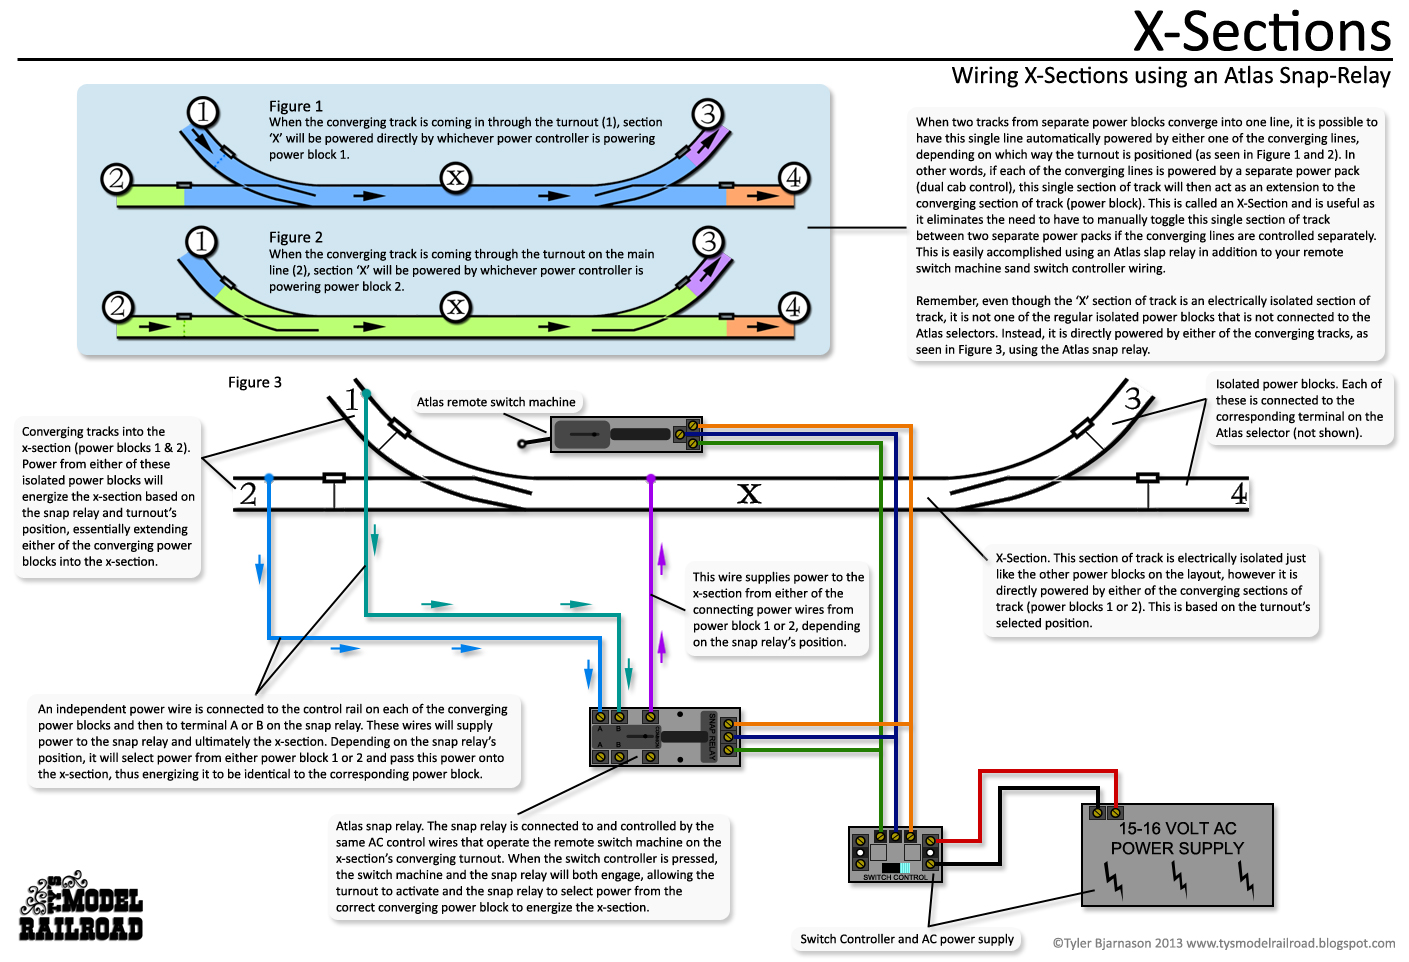 Tys Model Railroad Wiring Diagrams Diagram 2 Switch Light How To Wire An X Section Using Atlas Snap Relay And Existing Remote